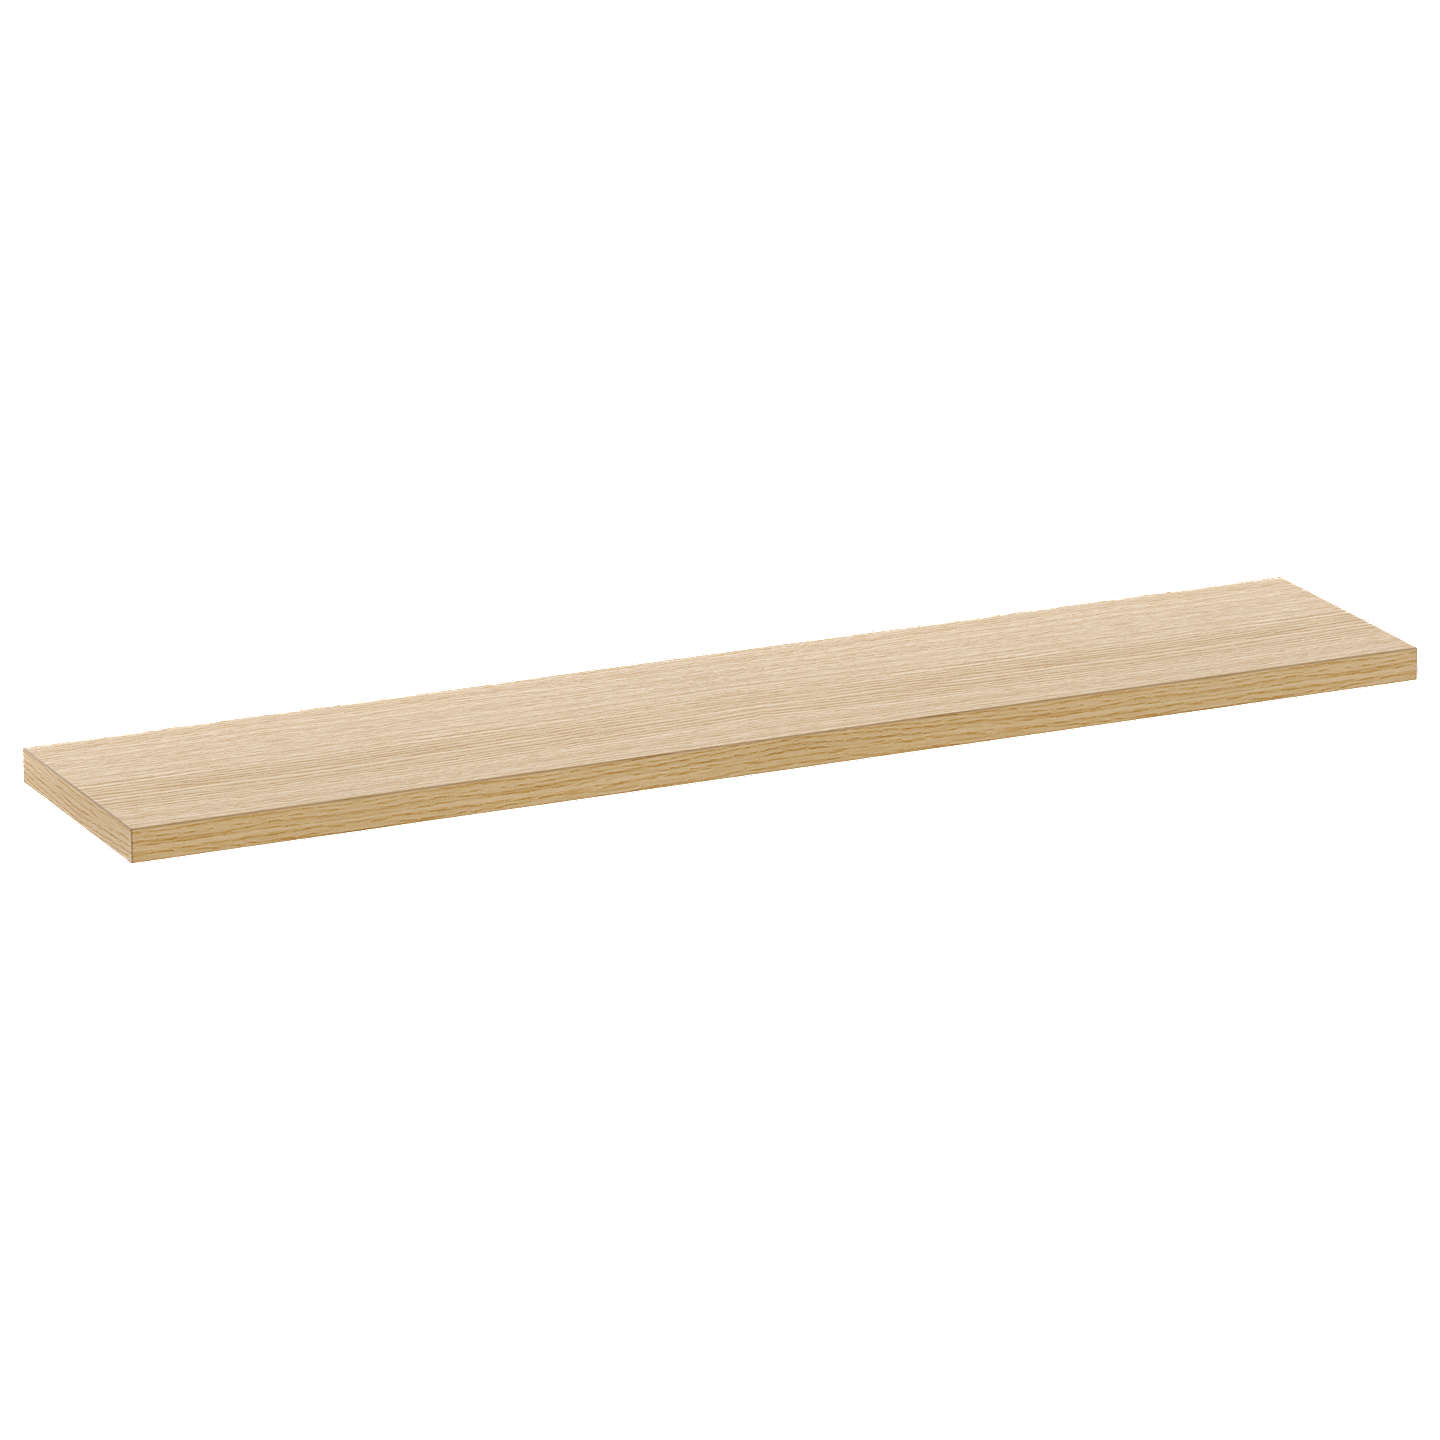 BuyHouse by John Lewis Mix it Wall Shelf, 60cm, Oak Online at johnlewis.com